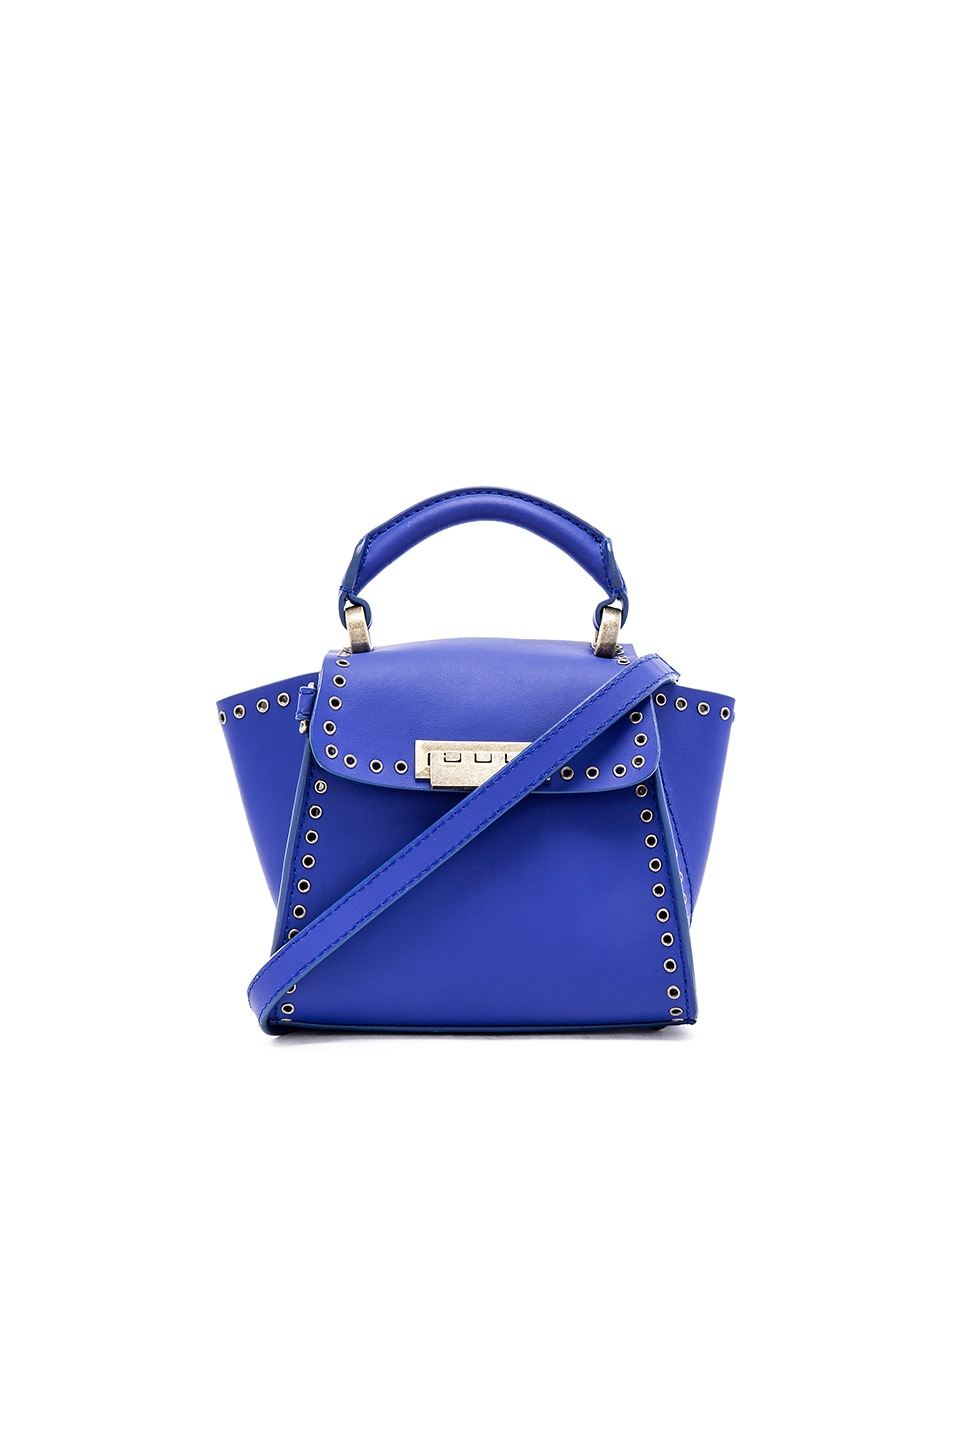 Zac Zac Posen Eartha Iconic Top Handle Mini Bag in Cobalt